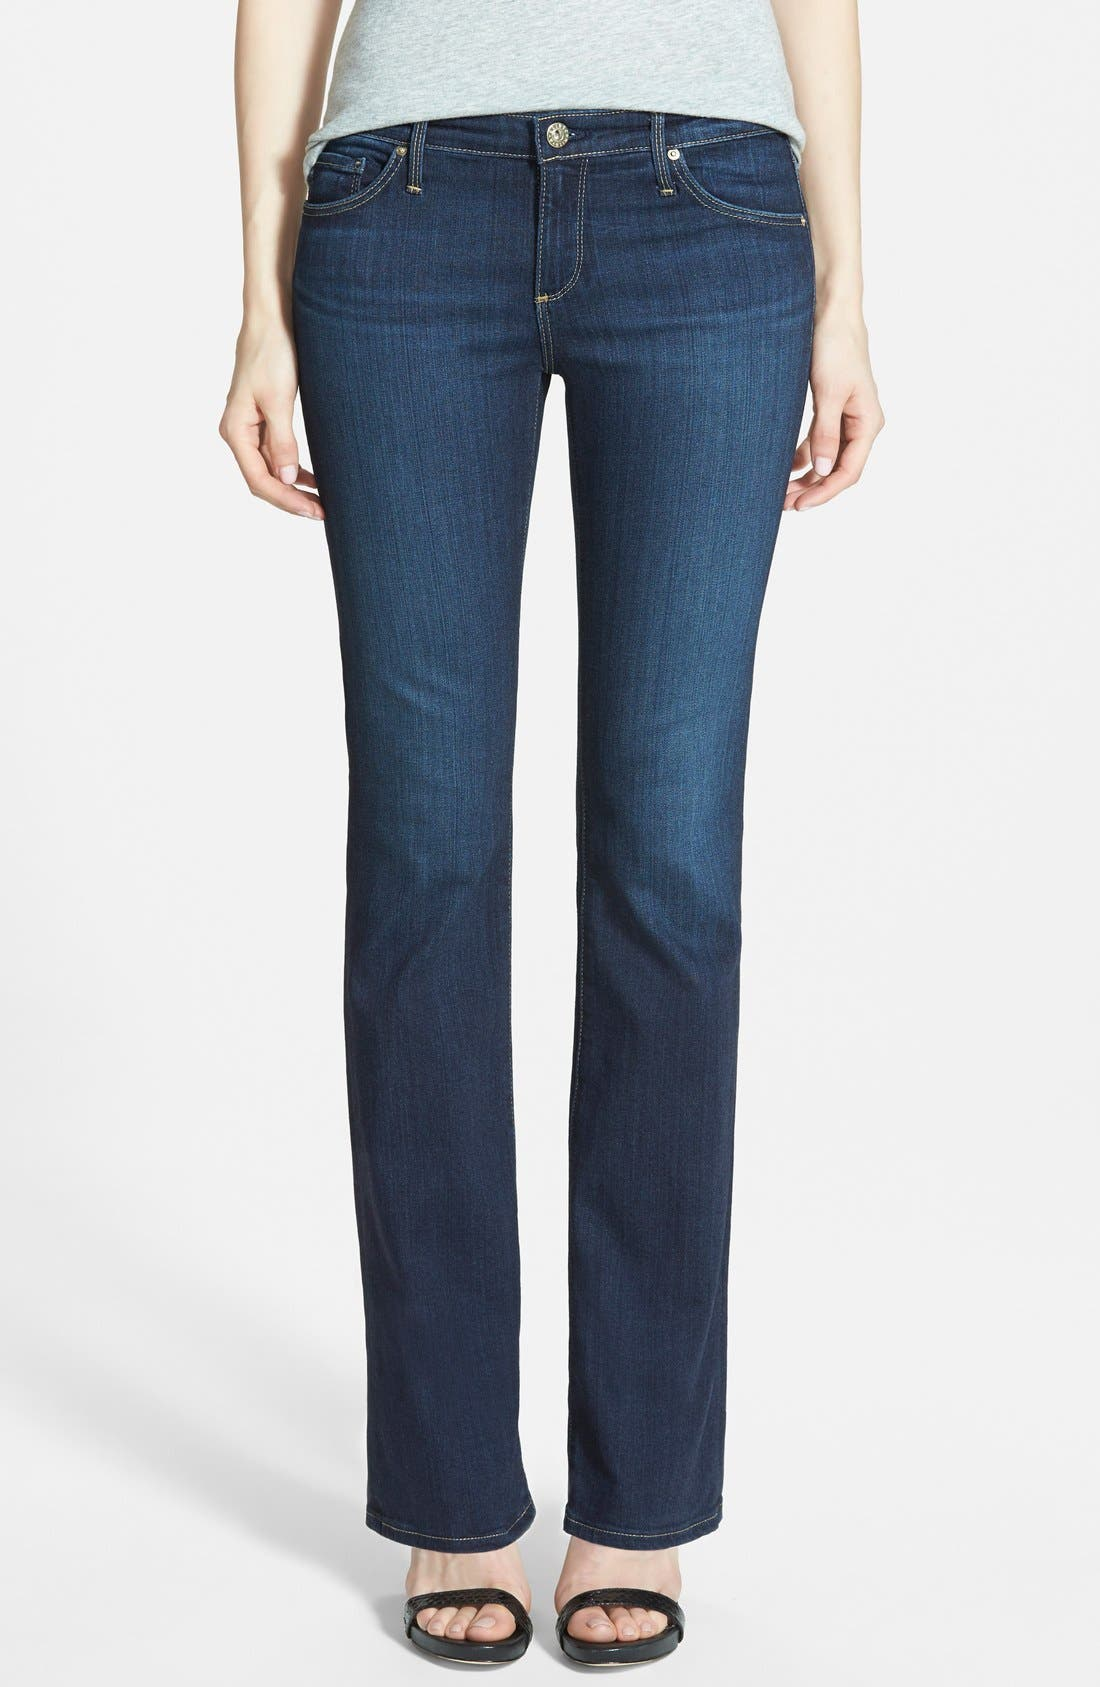 AG 'The Angelina' Bootcut Jeans, Main, color, 400